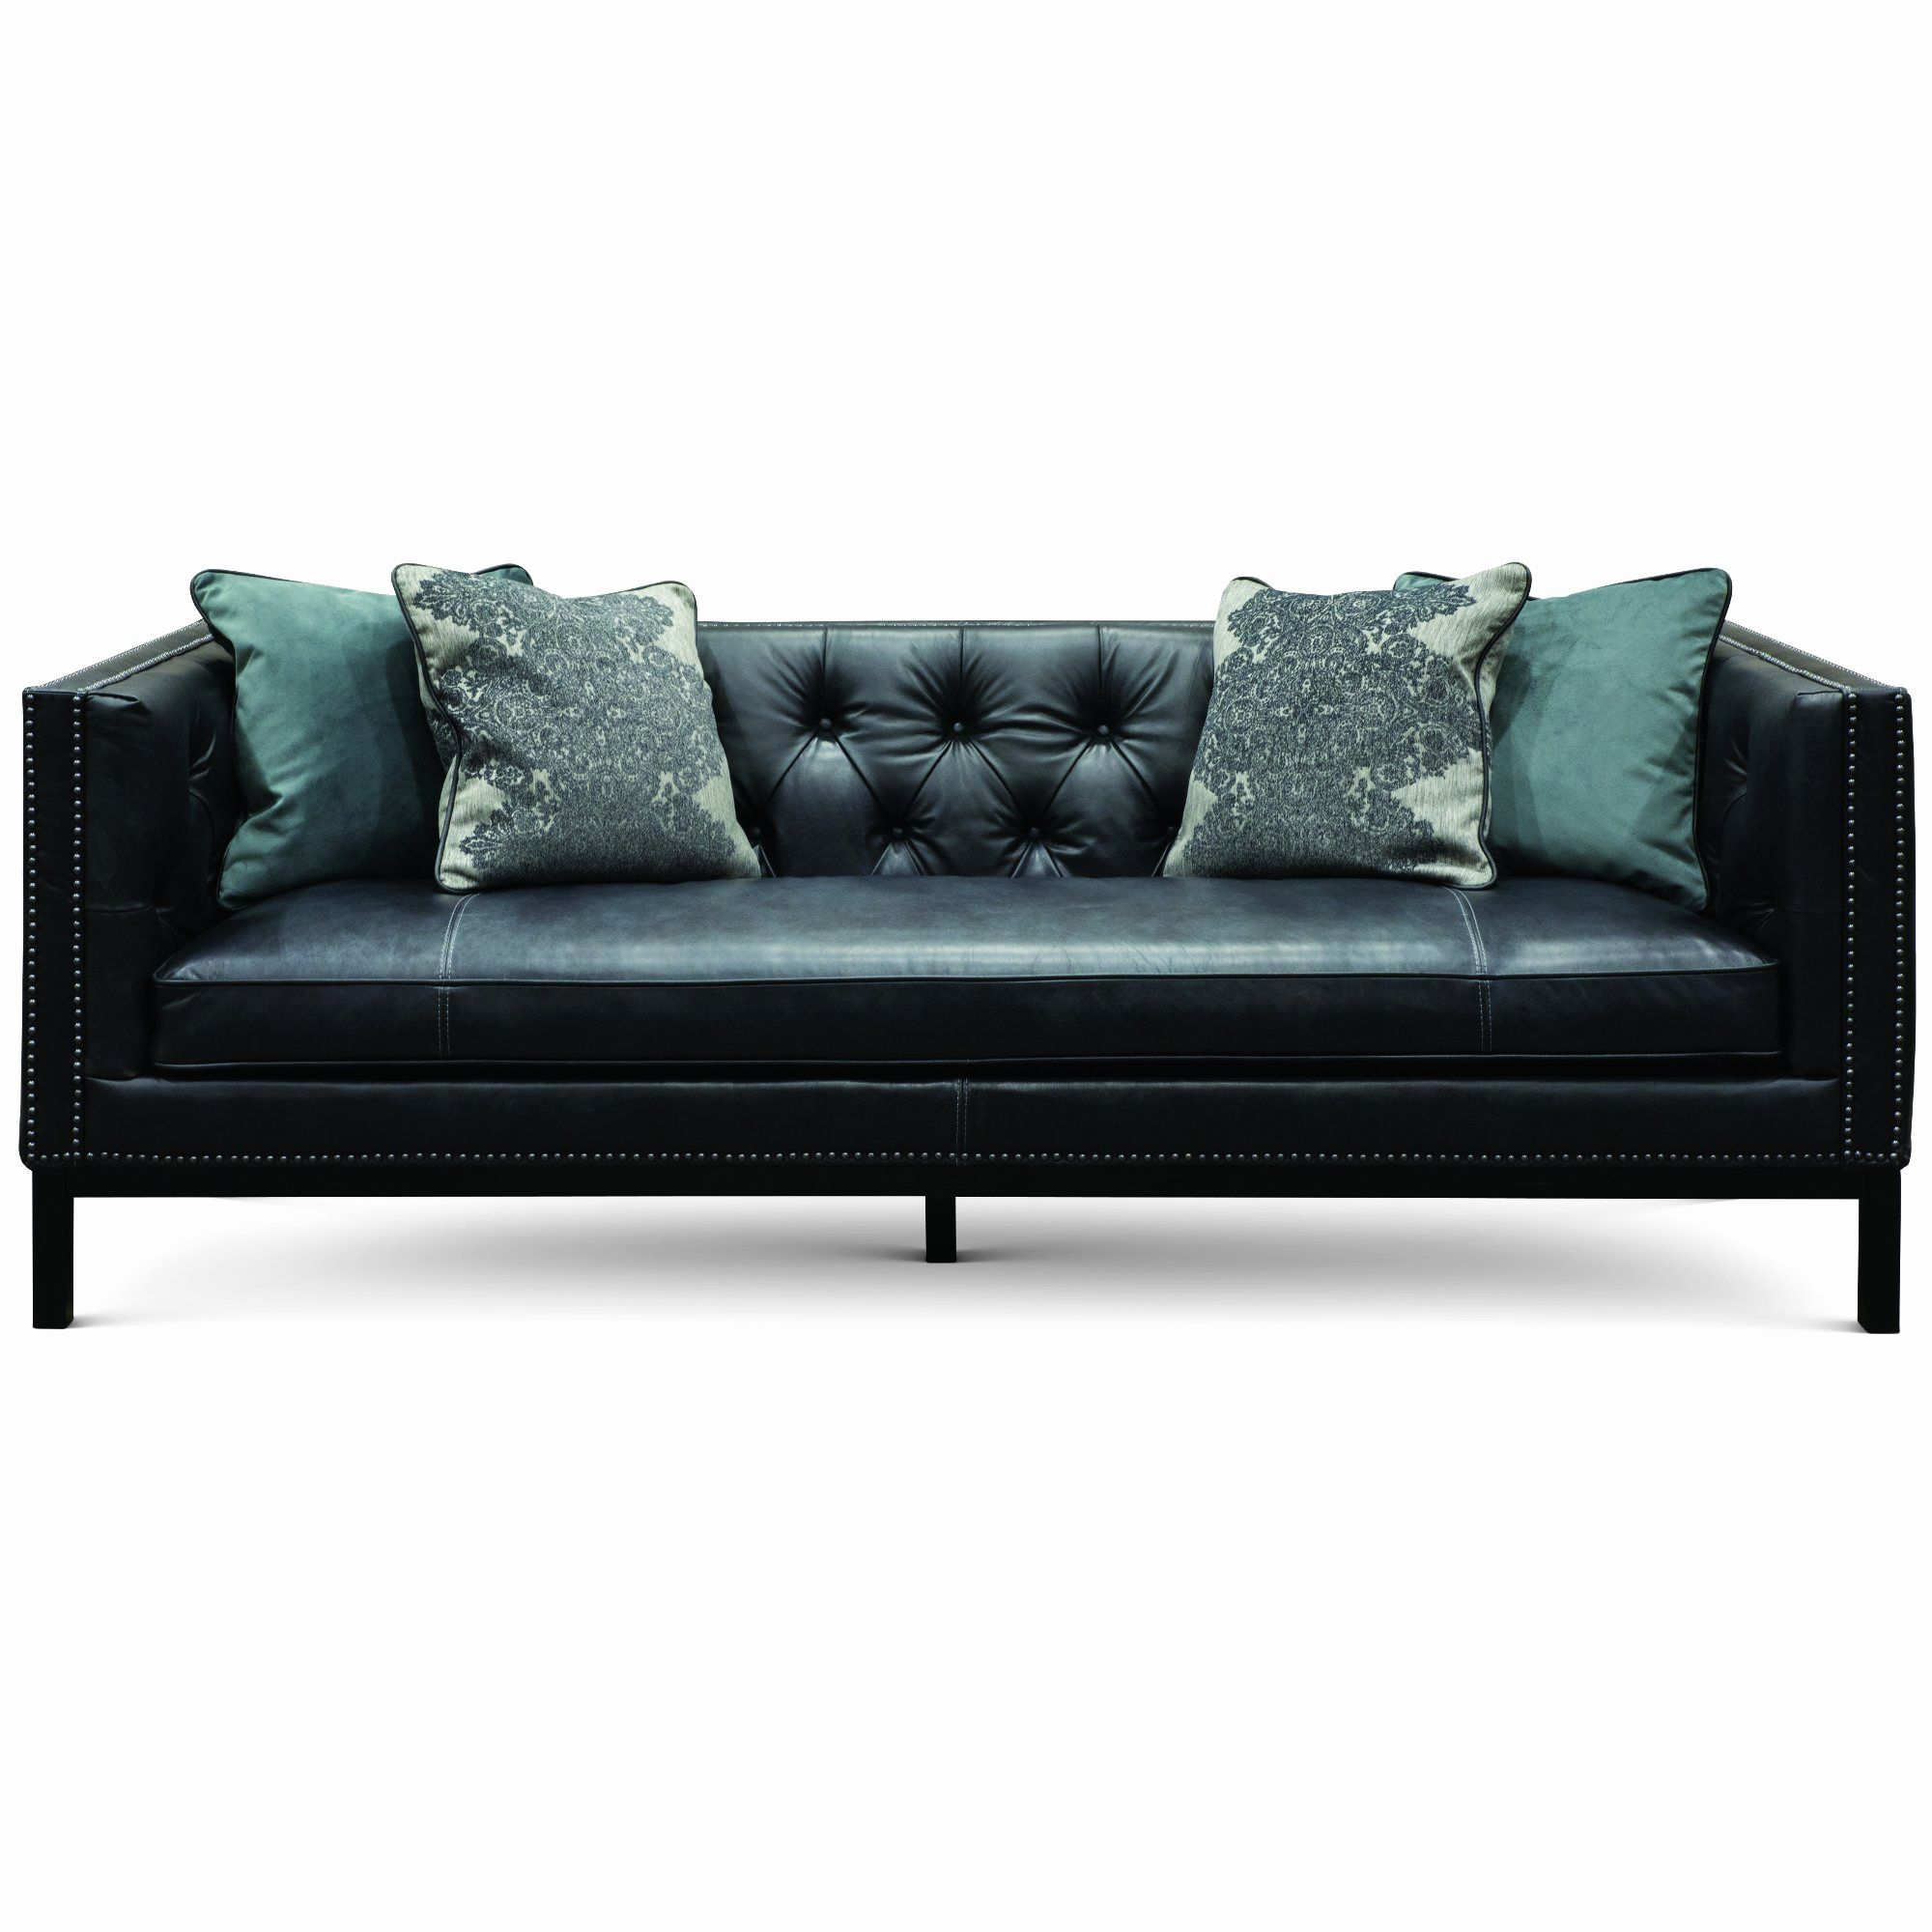 New Turquoise Leather Sofa Graphics Mid Century Modern Slate Black Leather Sofa St Jam Modern Leather Couch Black Leather Sofas Mid Century Modern Leather Sofa